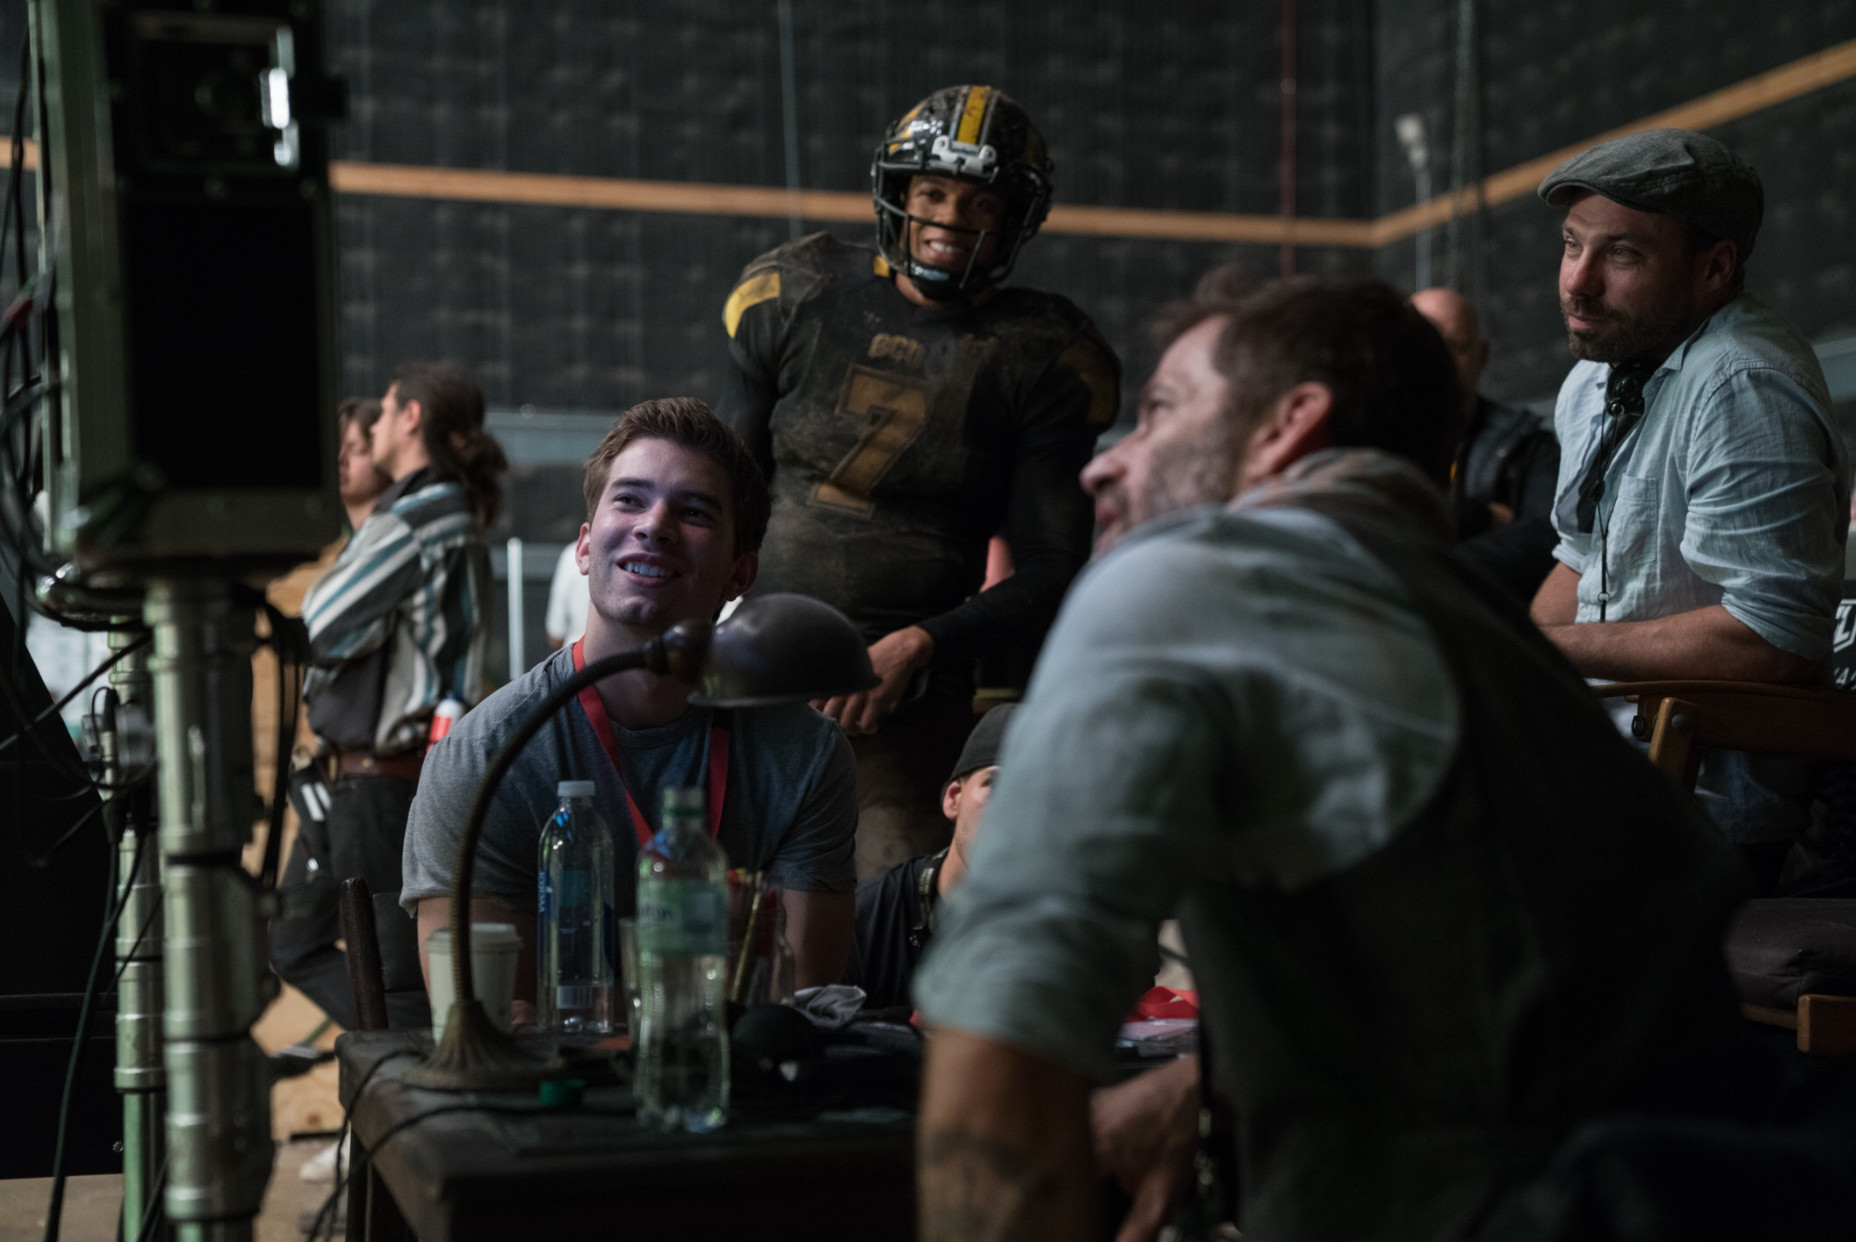 Justice League Zack Snyder Ray Fisher BTS Image